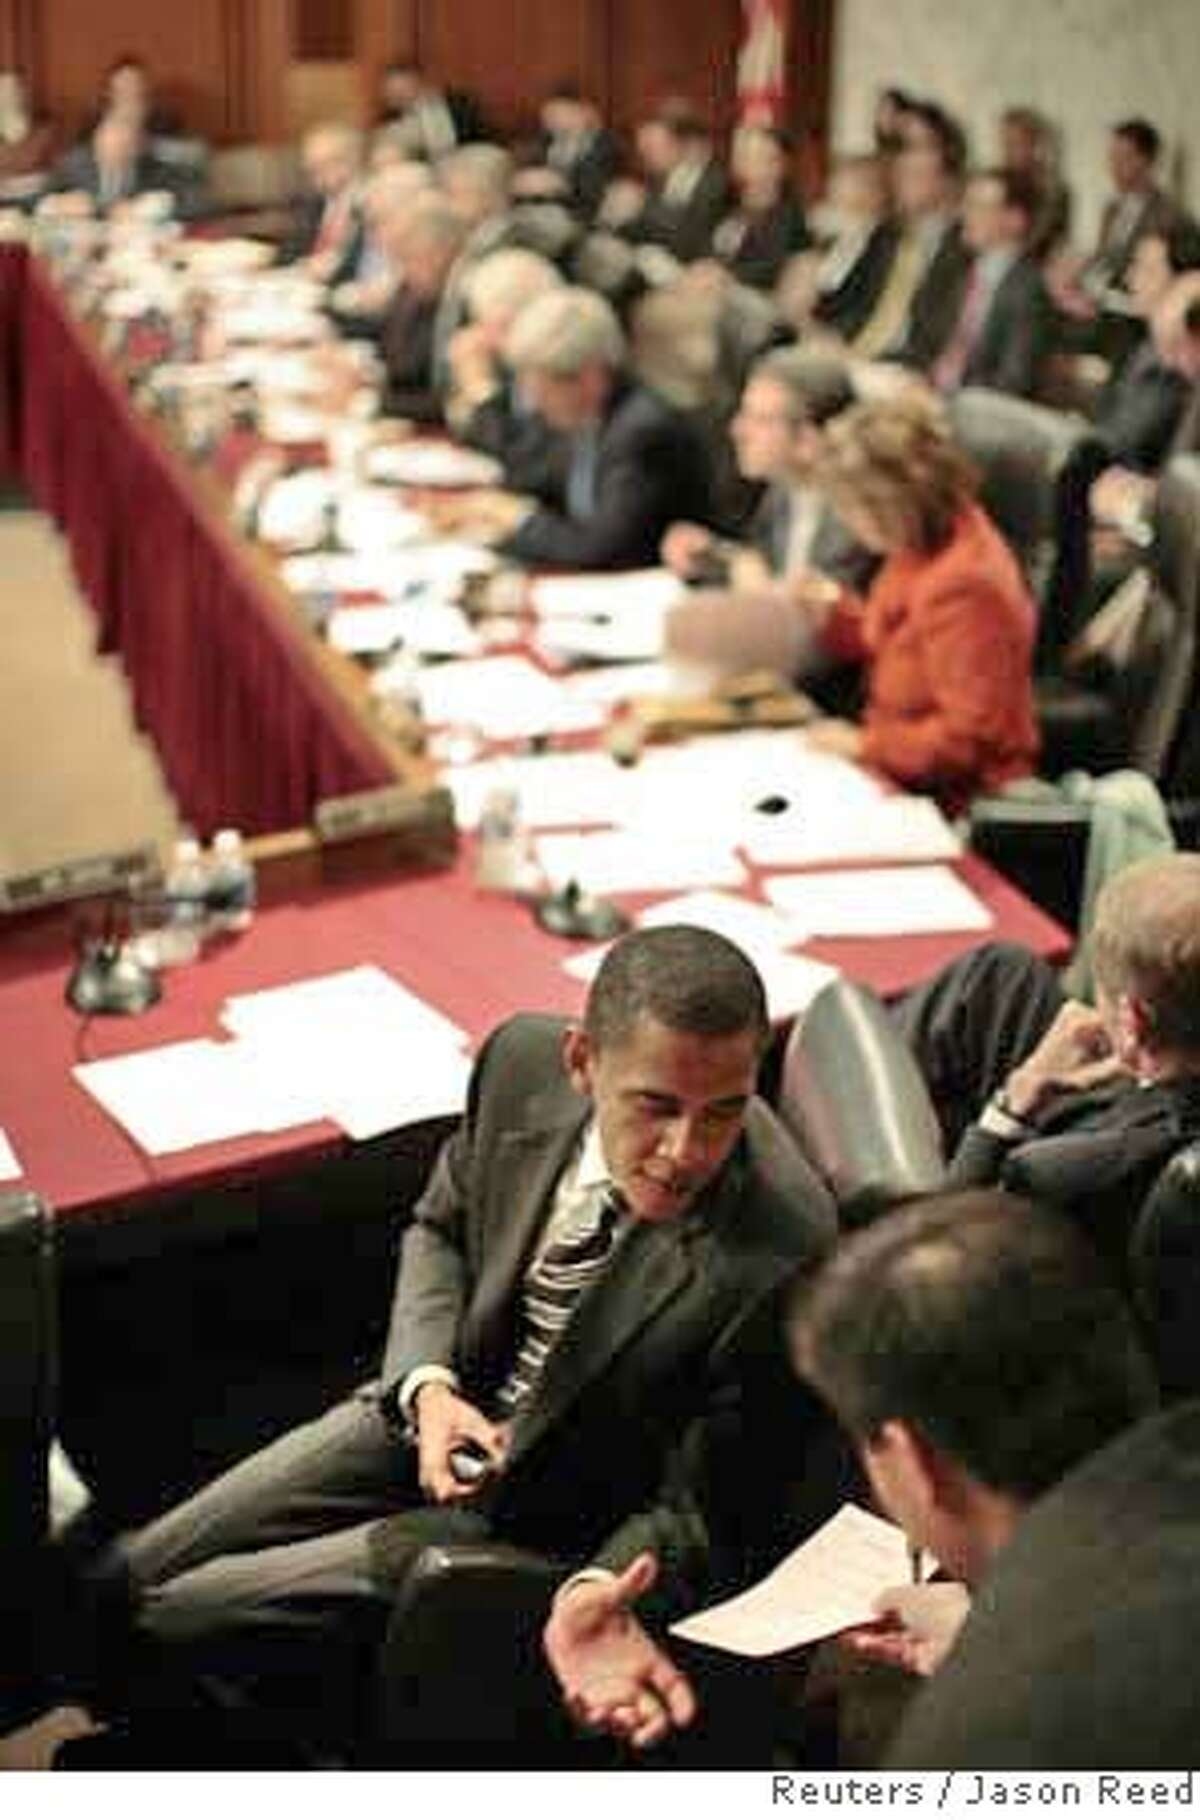 """U.S. Democratic party Senator Barack Obama (D-IL) receives a note from an aide during the Senate Foreign Relations Committee business meeting on Iraq resolution, on Capitol Hill in Washington, January 24, 2007. Democrats took the first step toward a wartime repudiation of President Bush on Wednesday, convening a Senate committee to endorse legislation declaring that the deployment of additional troops to Iraq is """"not in the national interest."""" REUTERS/Jason Reed (UNITED STATES) Ran on: 01-25-2007 Sens. Chuck Hagel, R-Neb., (left) and Richard Lugar, R-Ind., participate in the Foreign Relations Committee debate."""